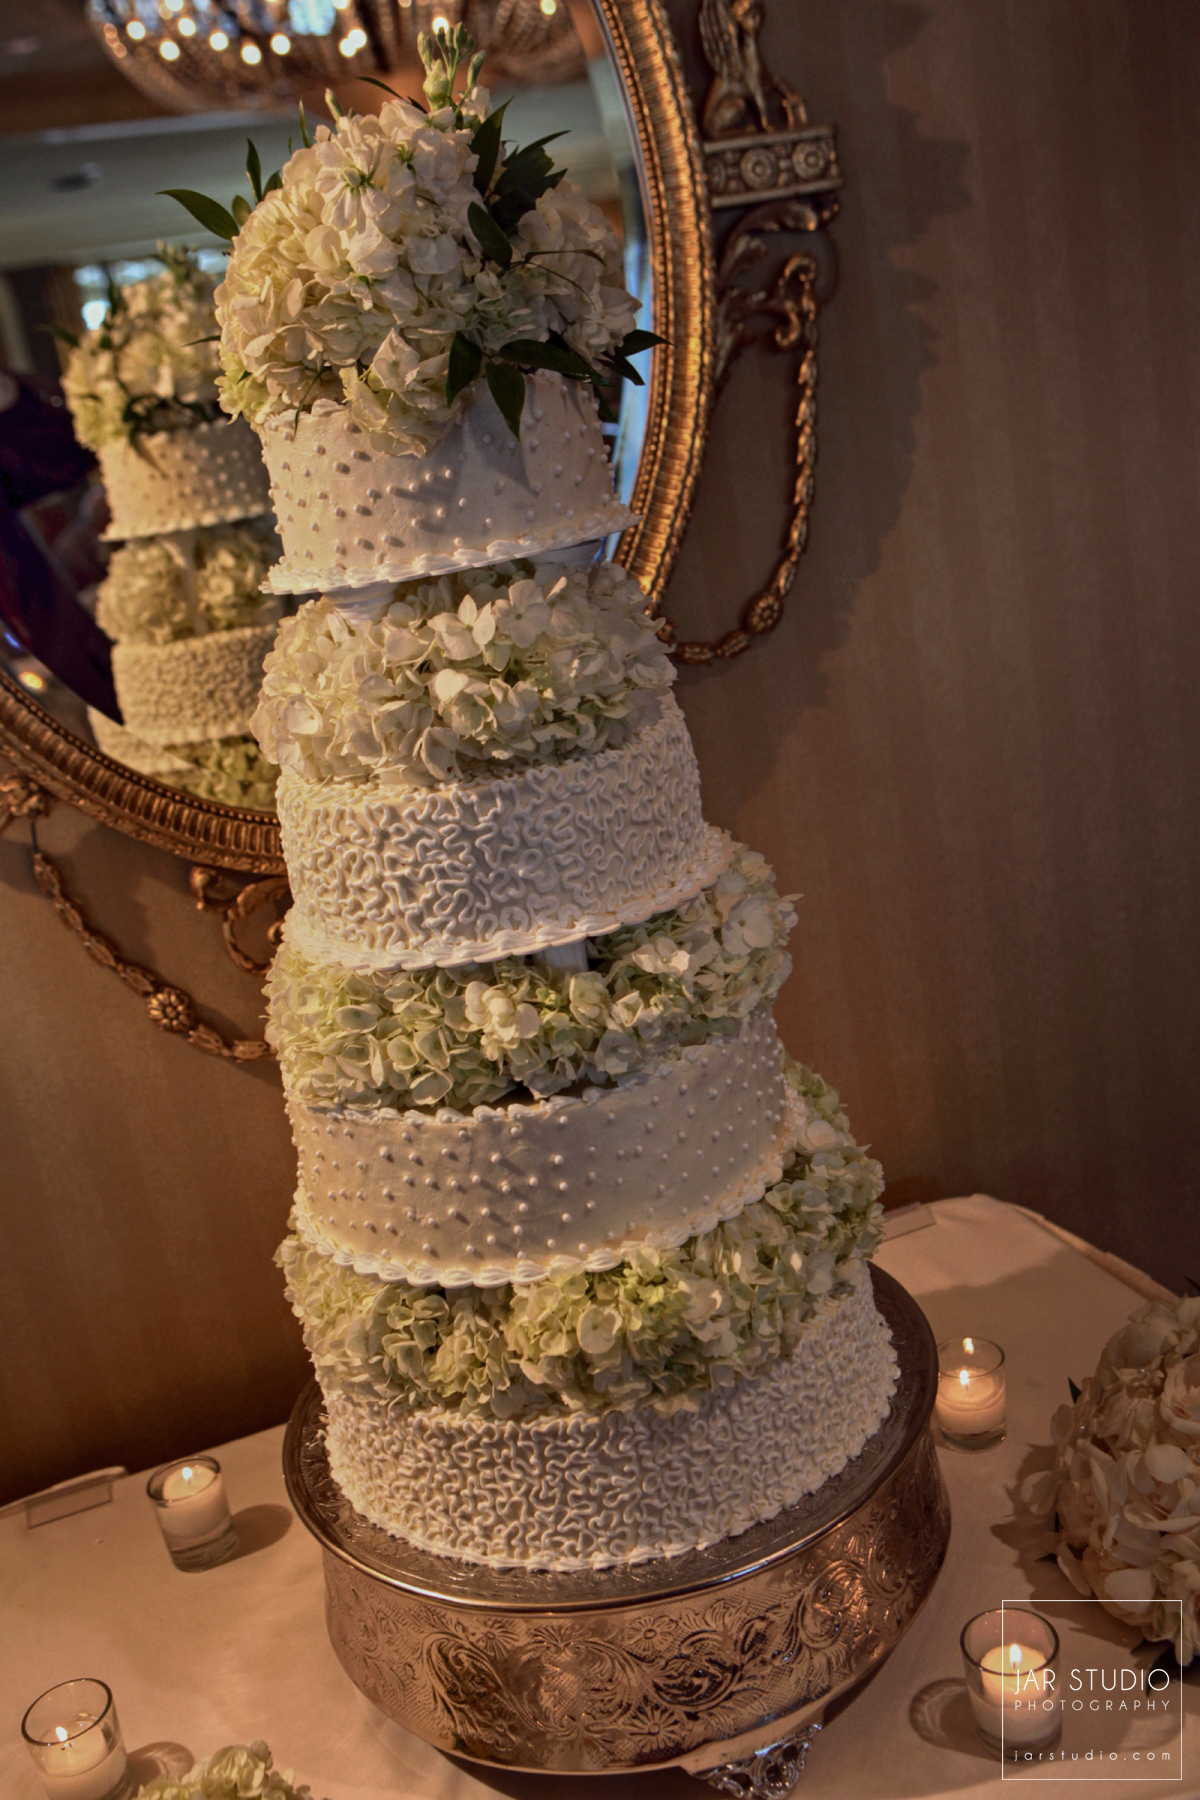 14-wedding-venue-the-tampa-club-cake-jar-studio-photography.JPG